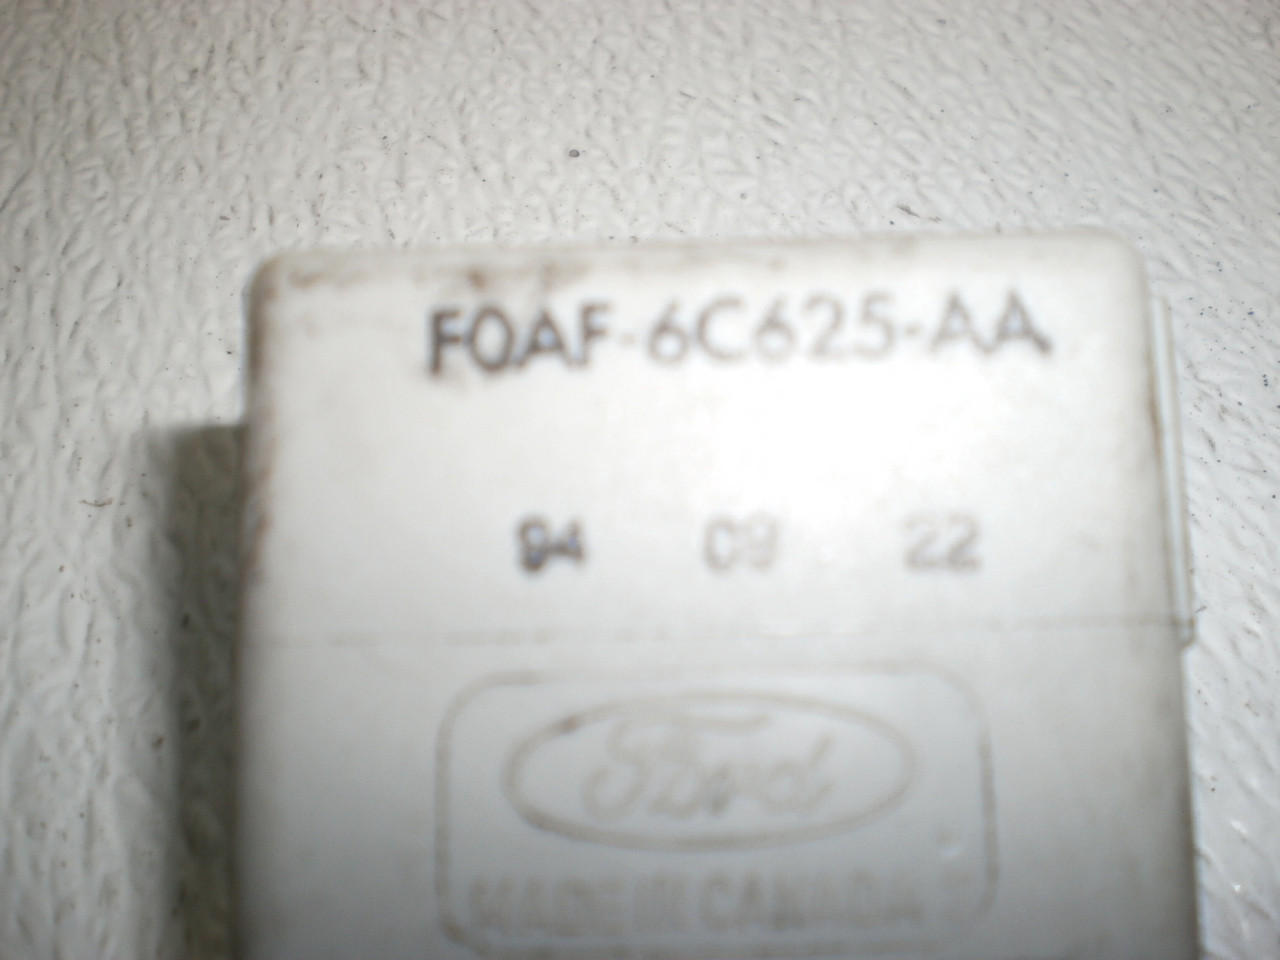 hight resolution of 1994 1998 ford mustang under dash low oil level sensing module box f0af 6c625 aa